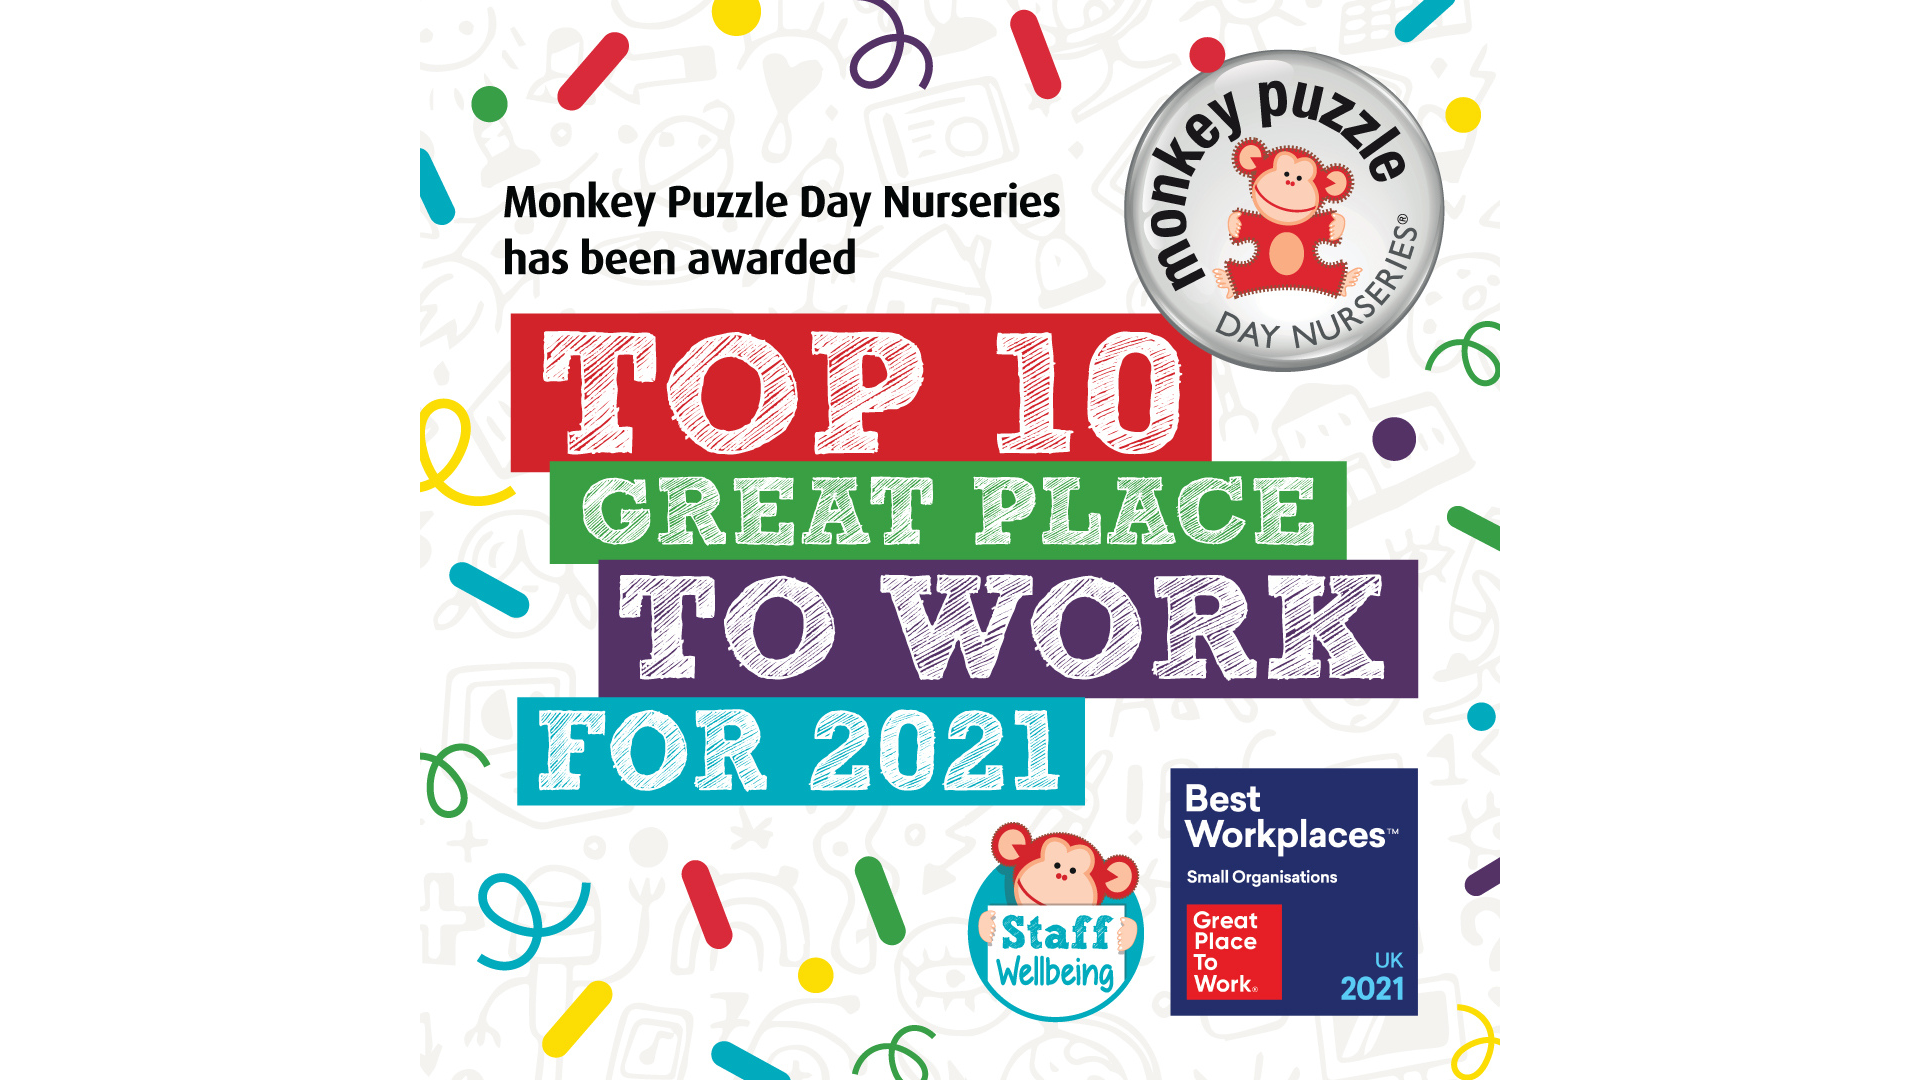 MONKEY PUZZLE DAY NURSERIES IS NUMBER 22 ON THE GPTW #UKBESTWORKPLACES LIST!